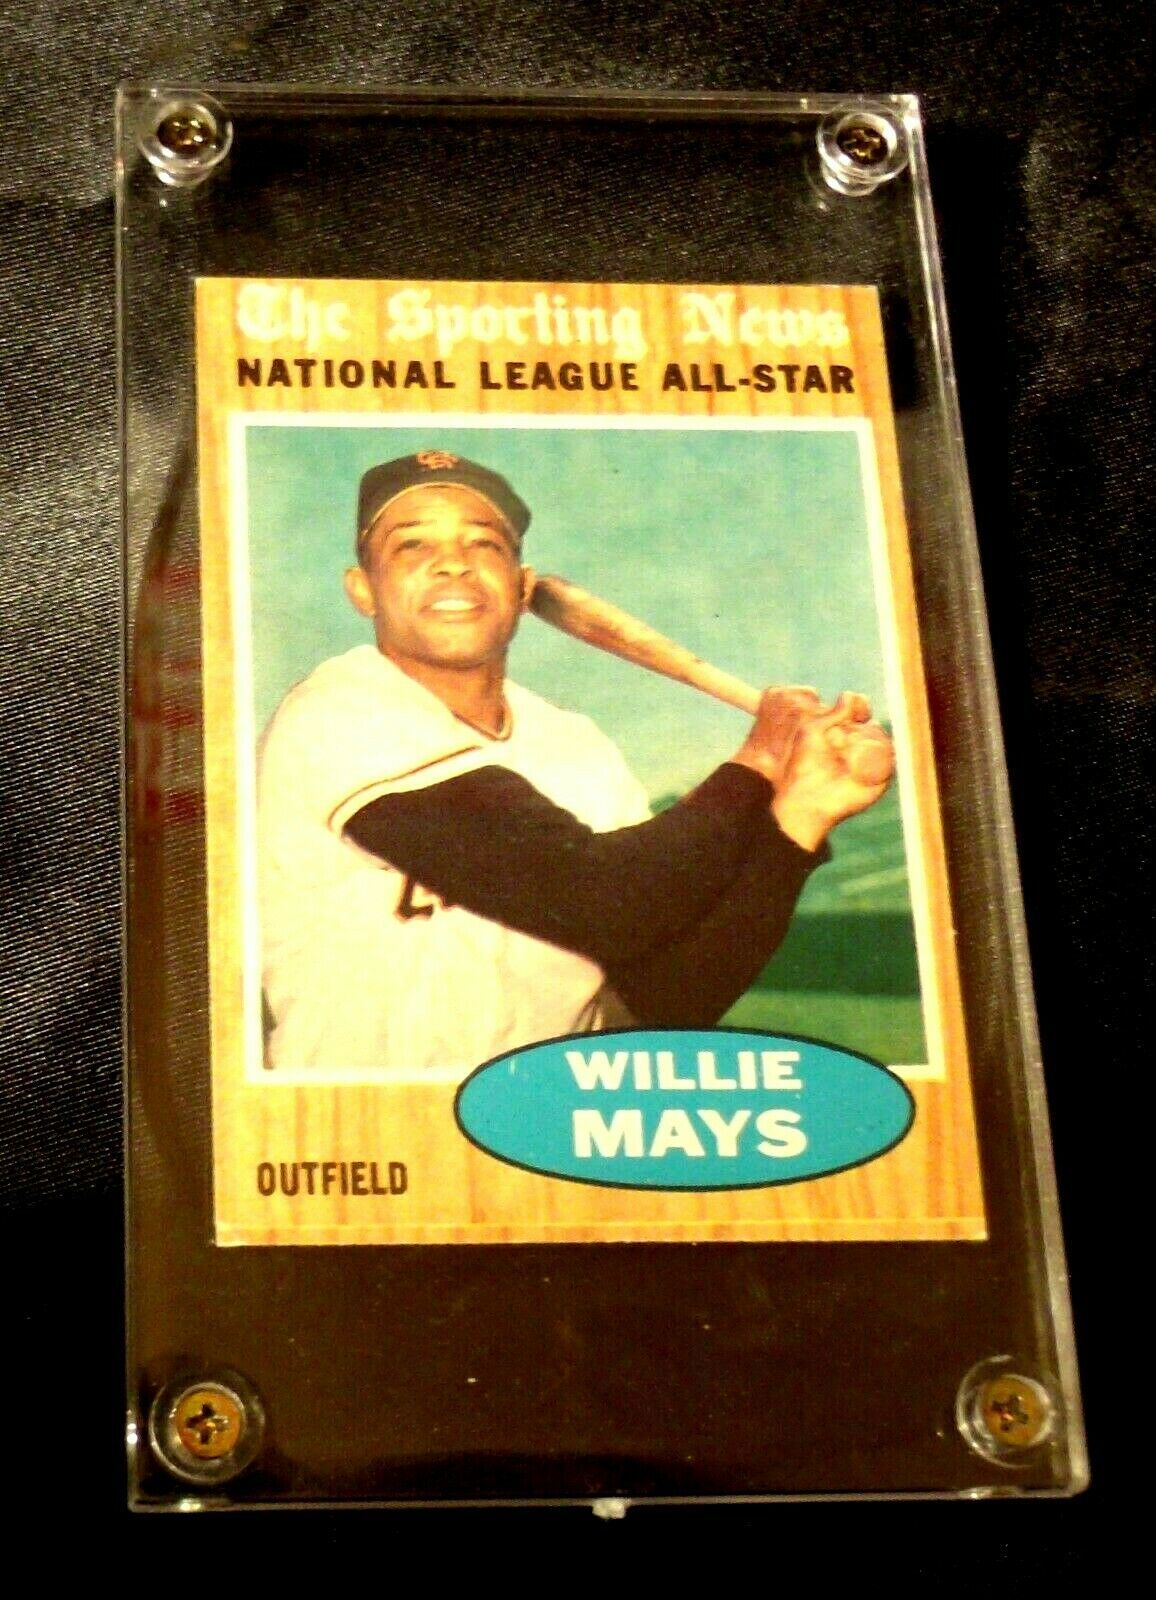 Willie Mays Baseball Trading Card # 395 Outfield- Nash AA19-BTC4006 Vintage Coll